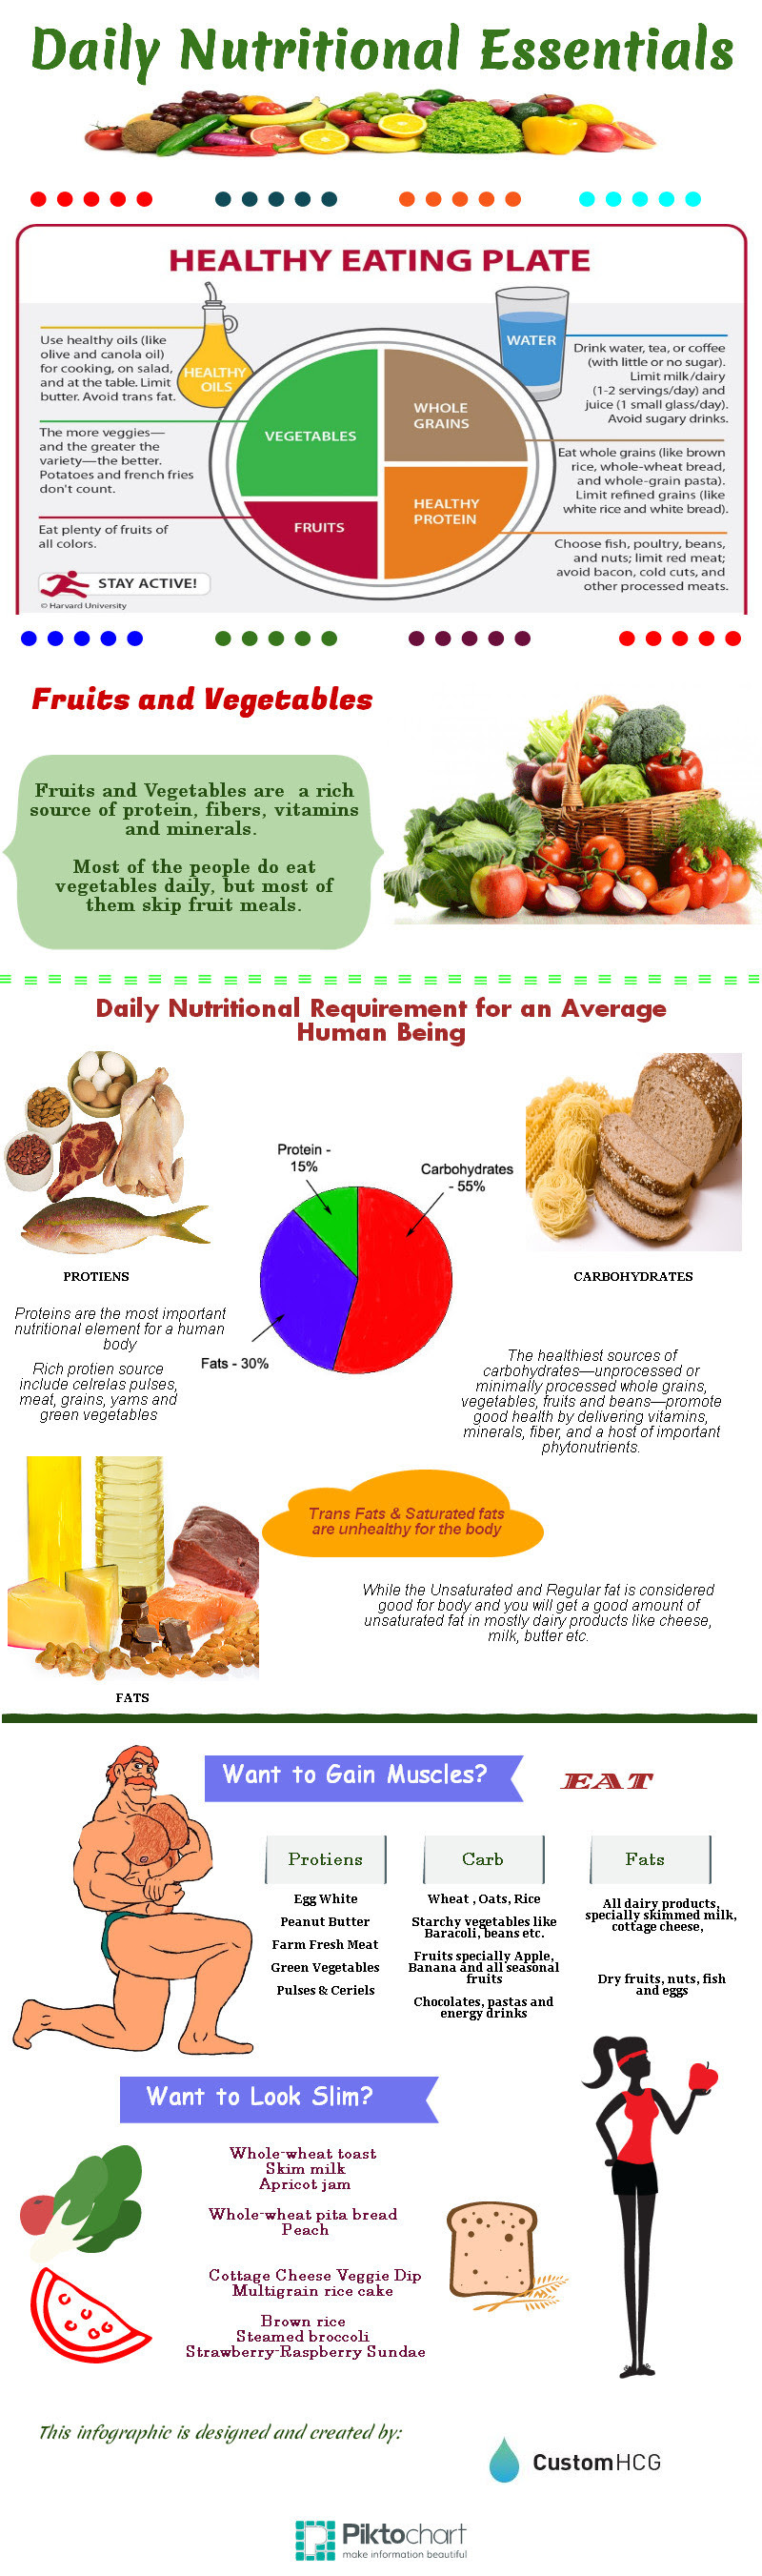 Infographic: Daily Nutritional Essentials